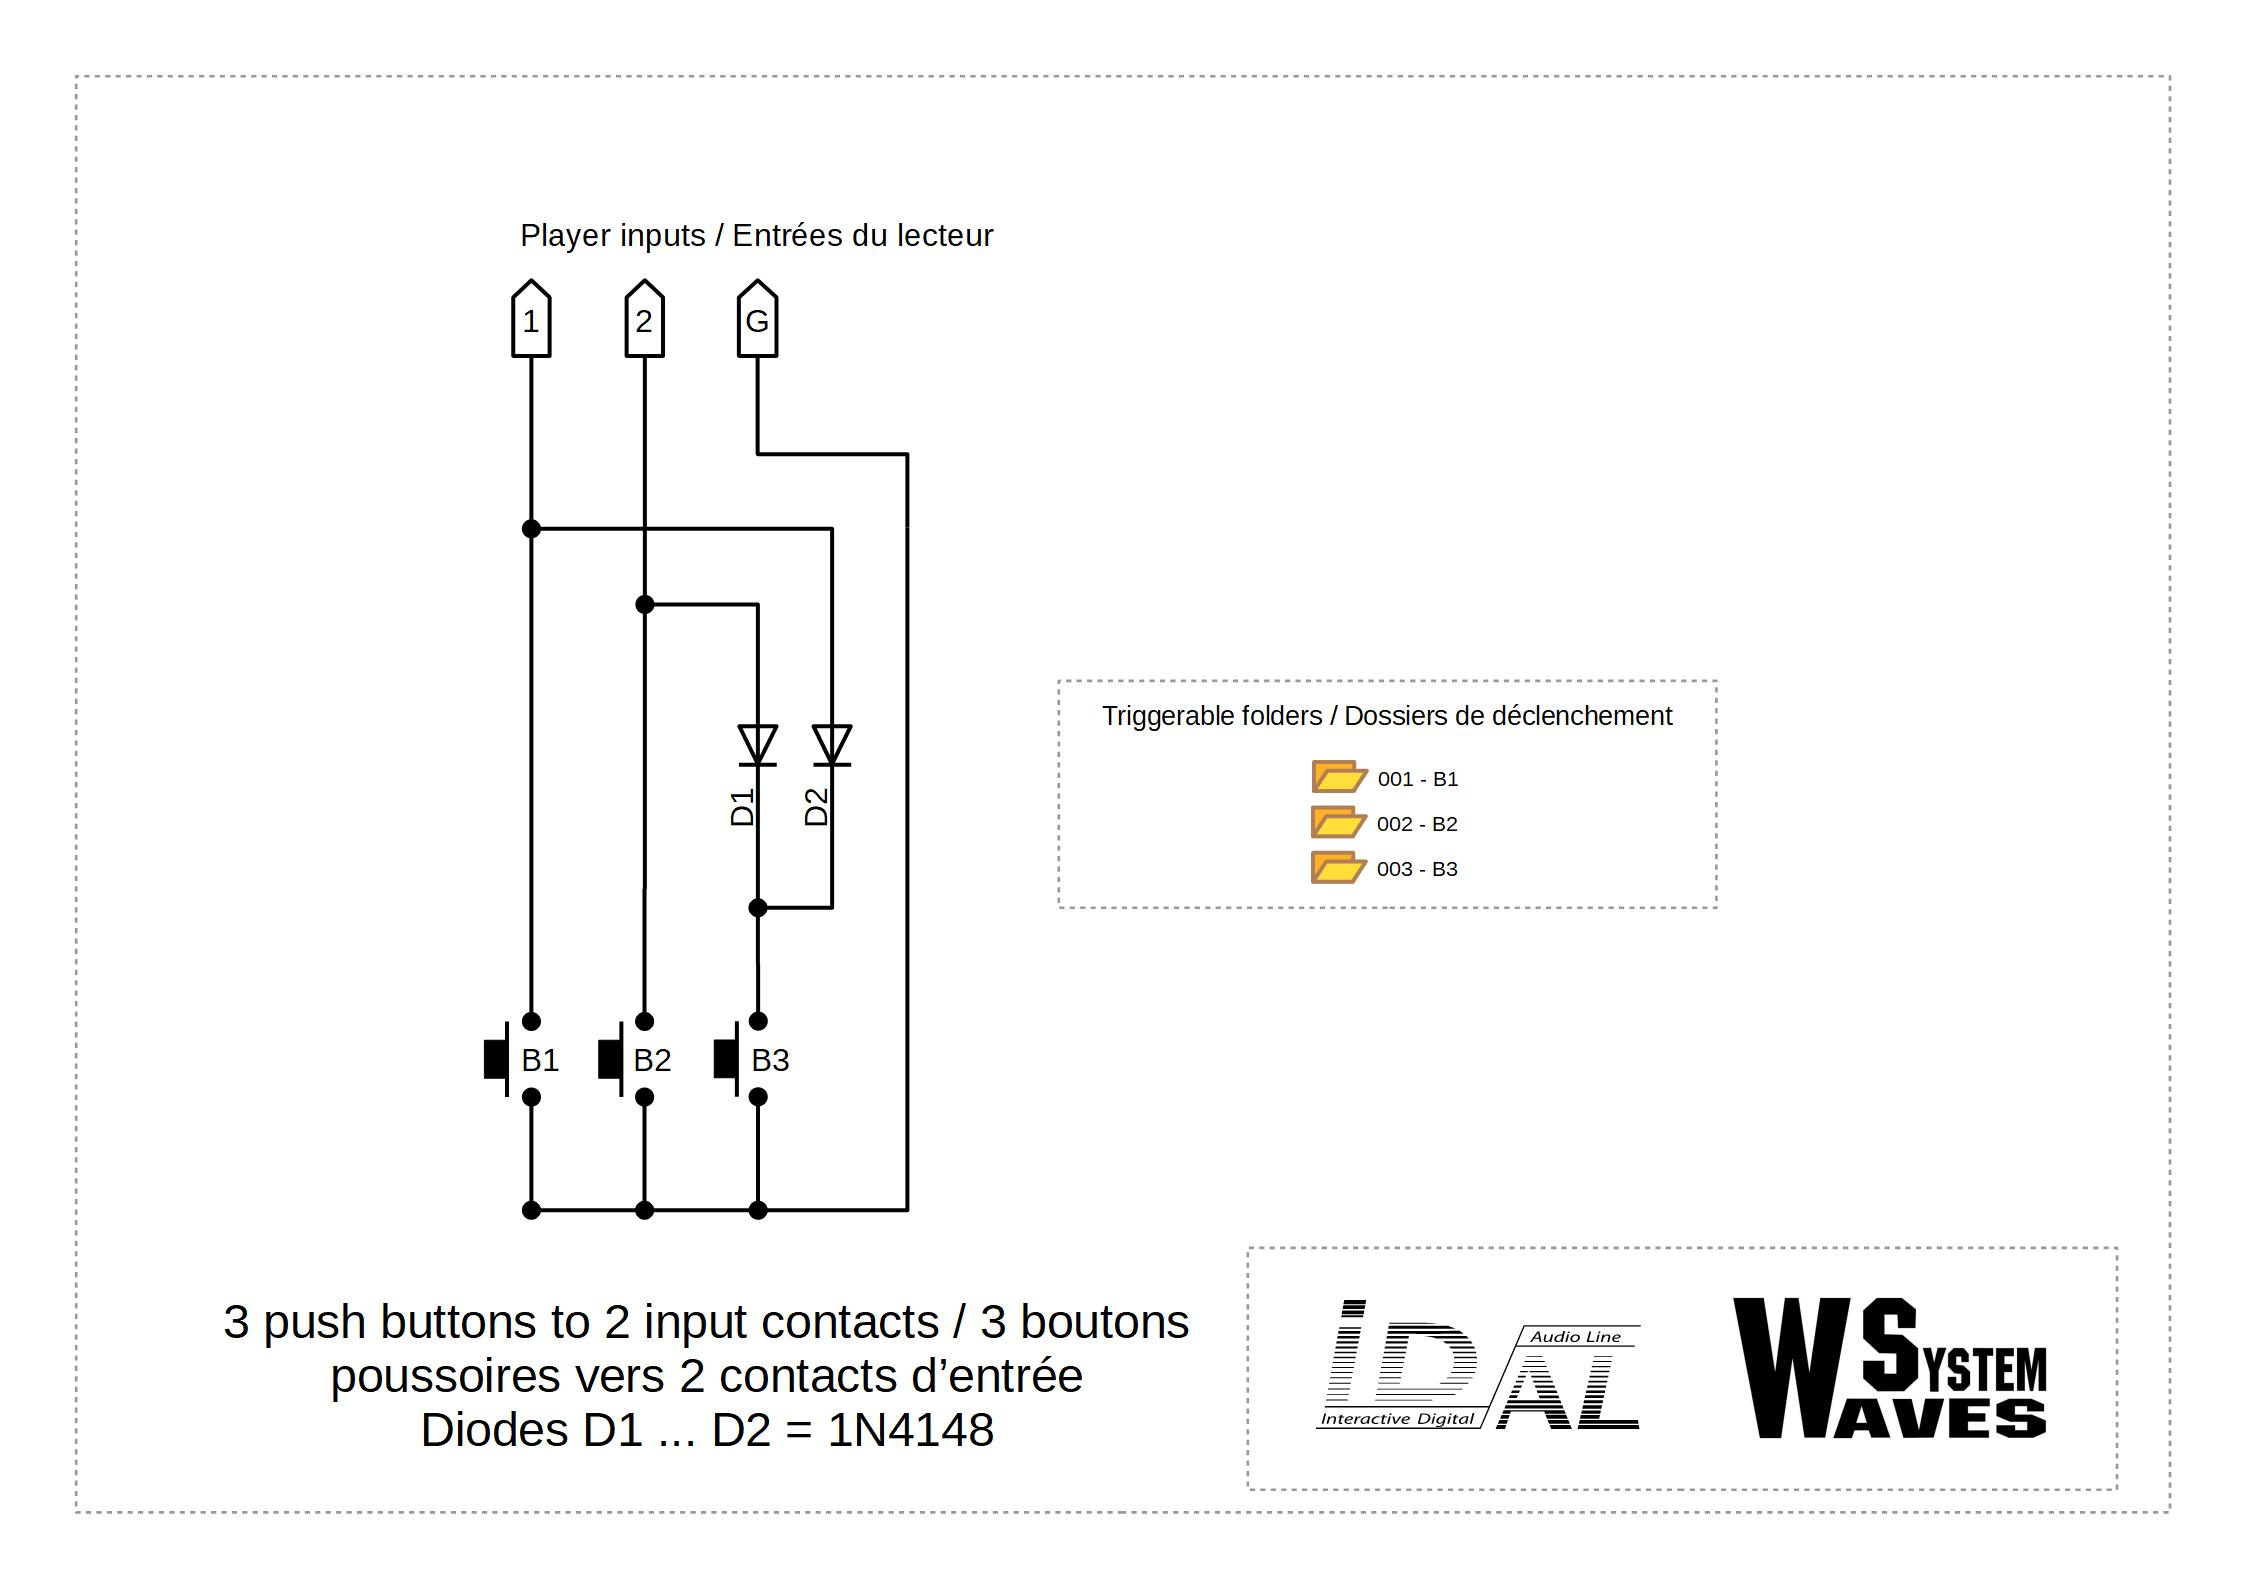 Chronoplayer Contact Wiring Diagram 3 Push Buttons To 2 Input Contacts With Diodes